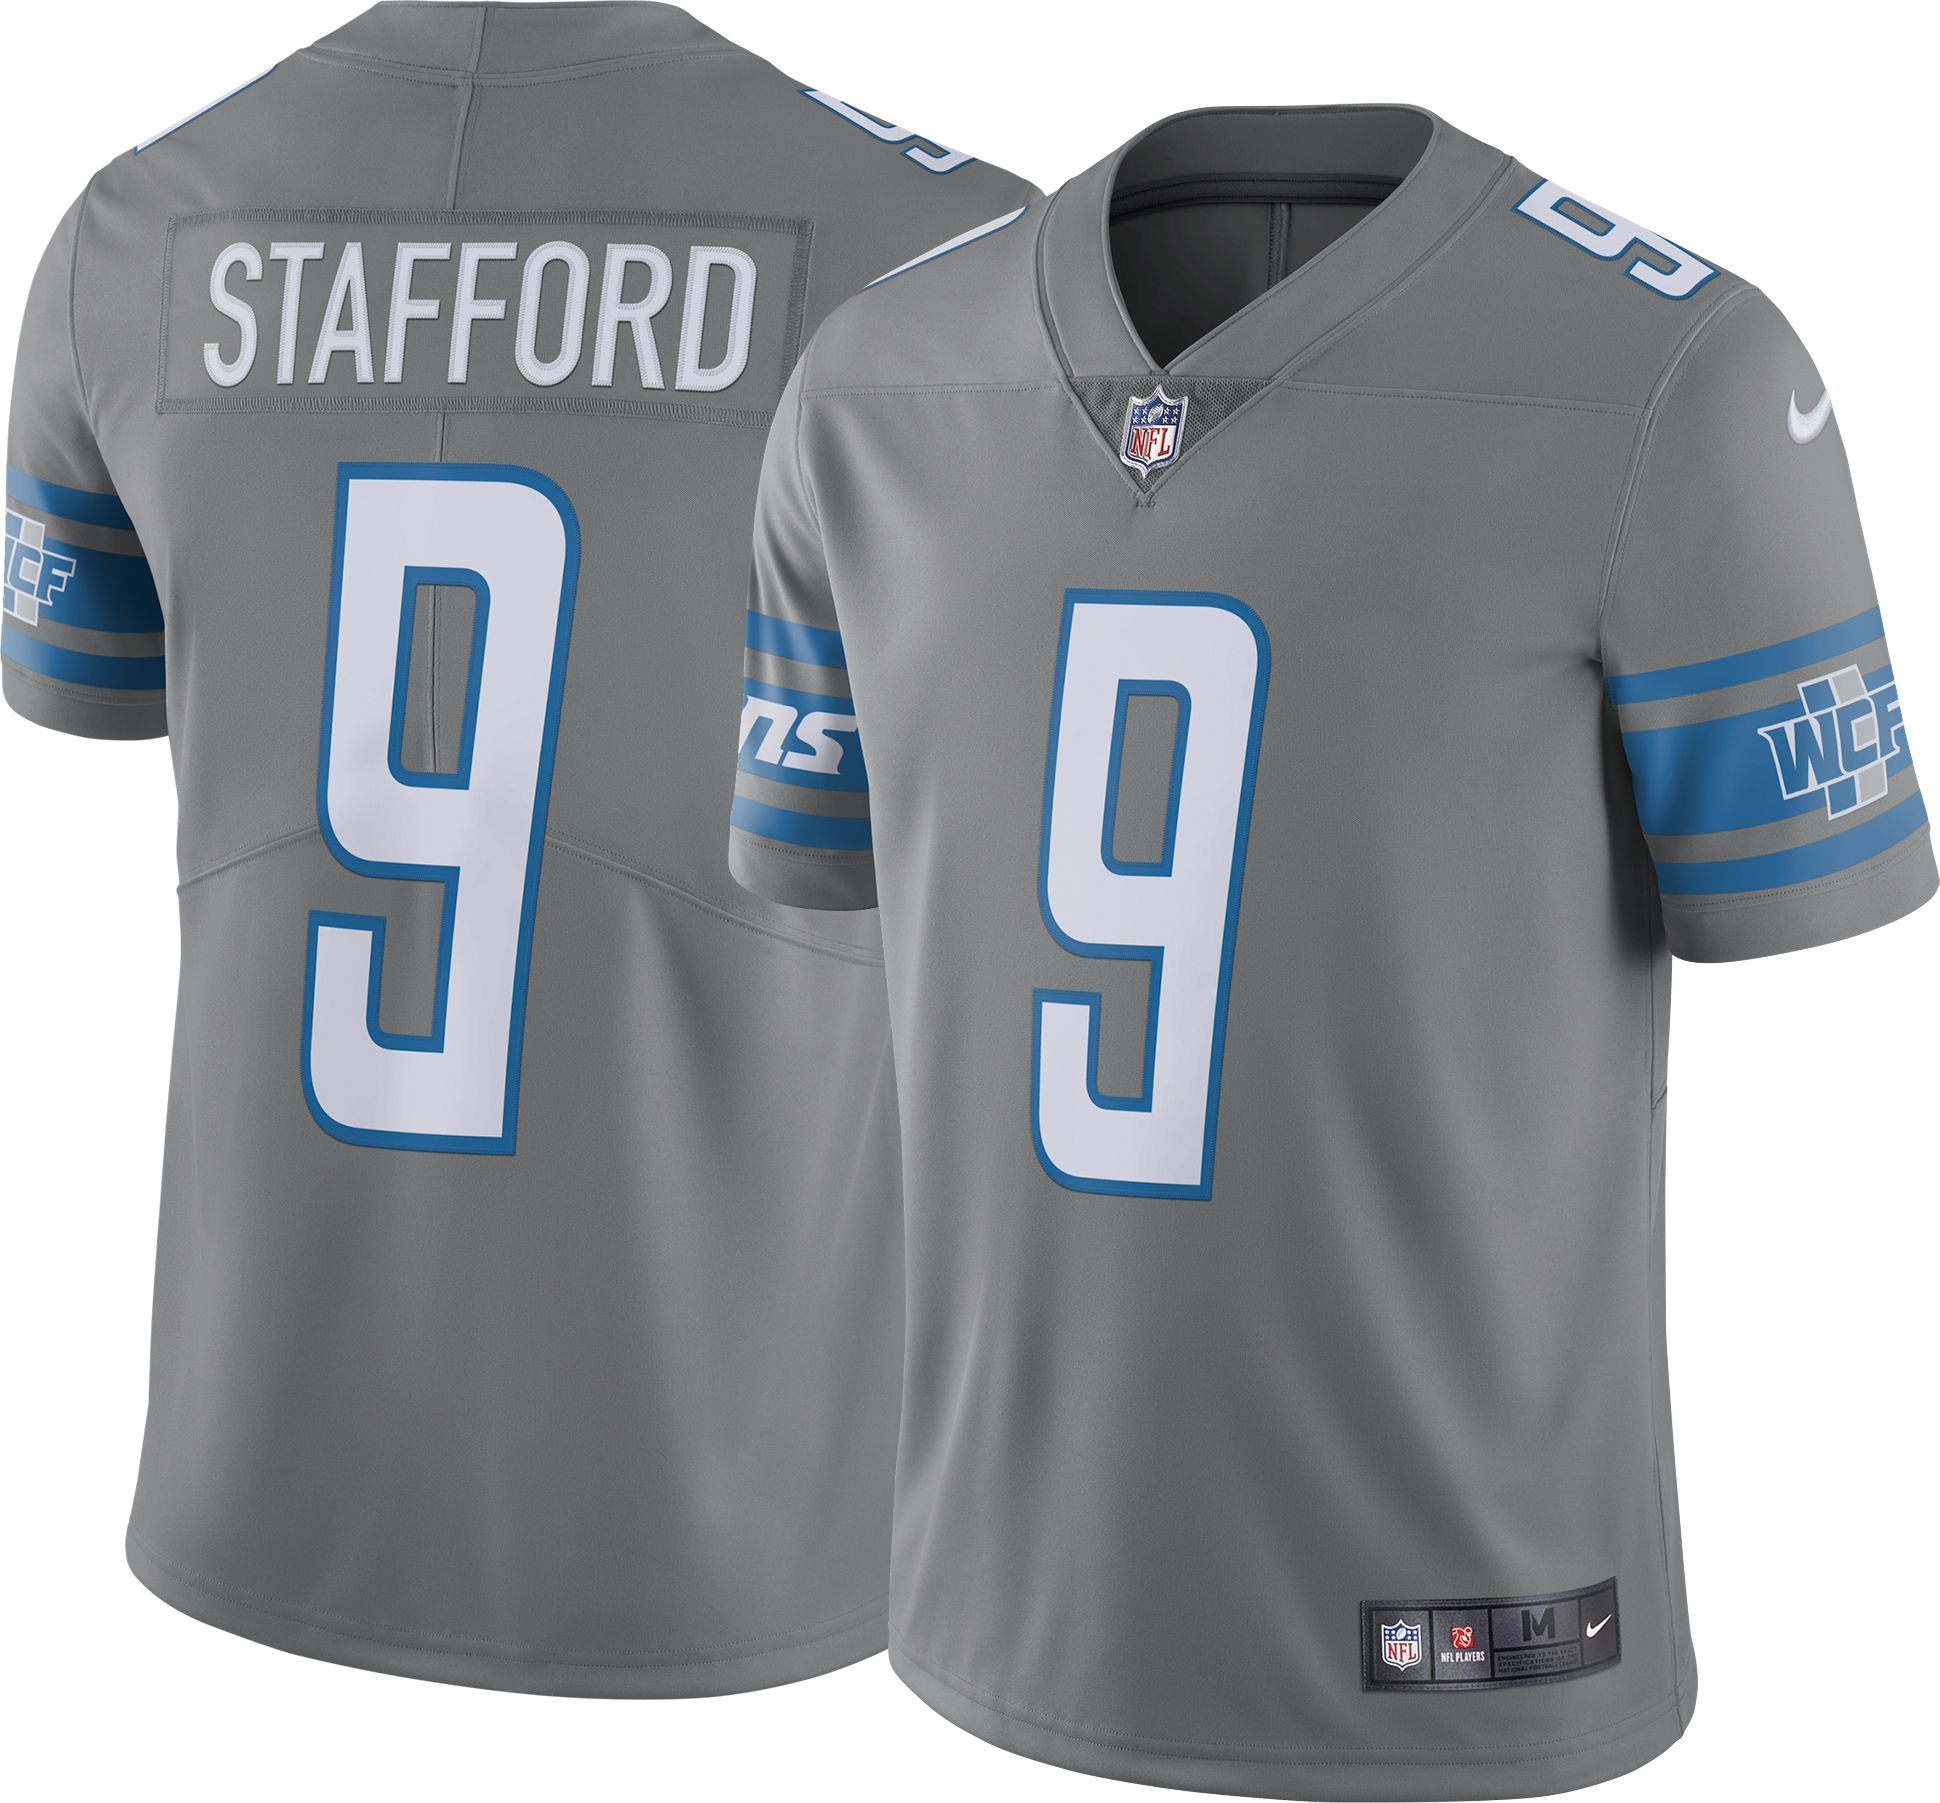 nfl rush jerseys for sale